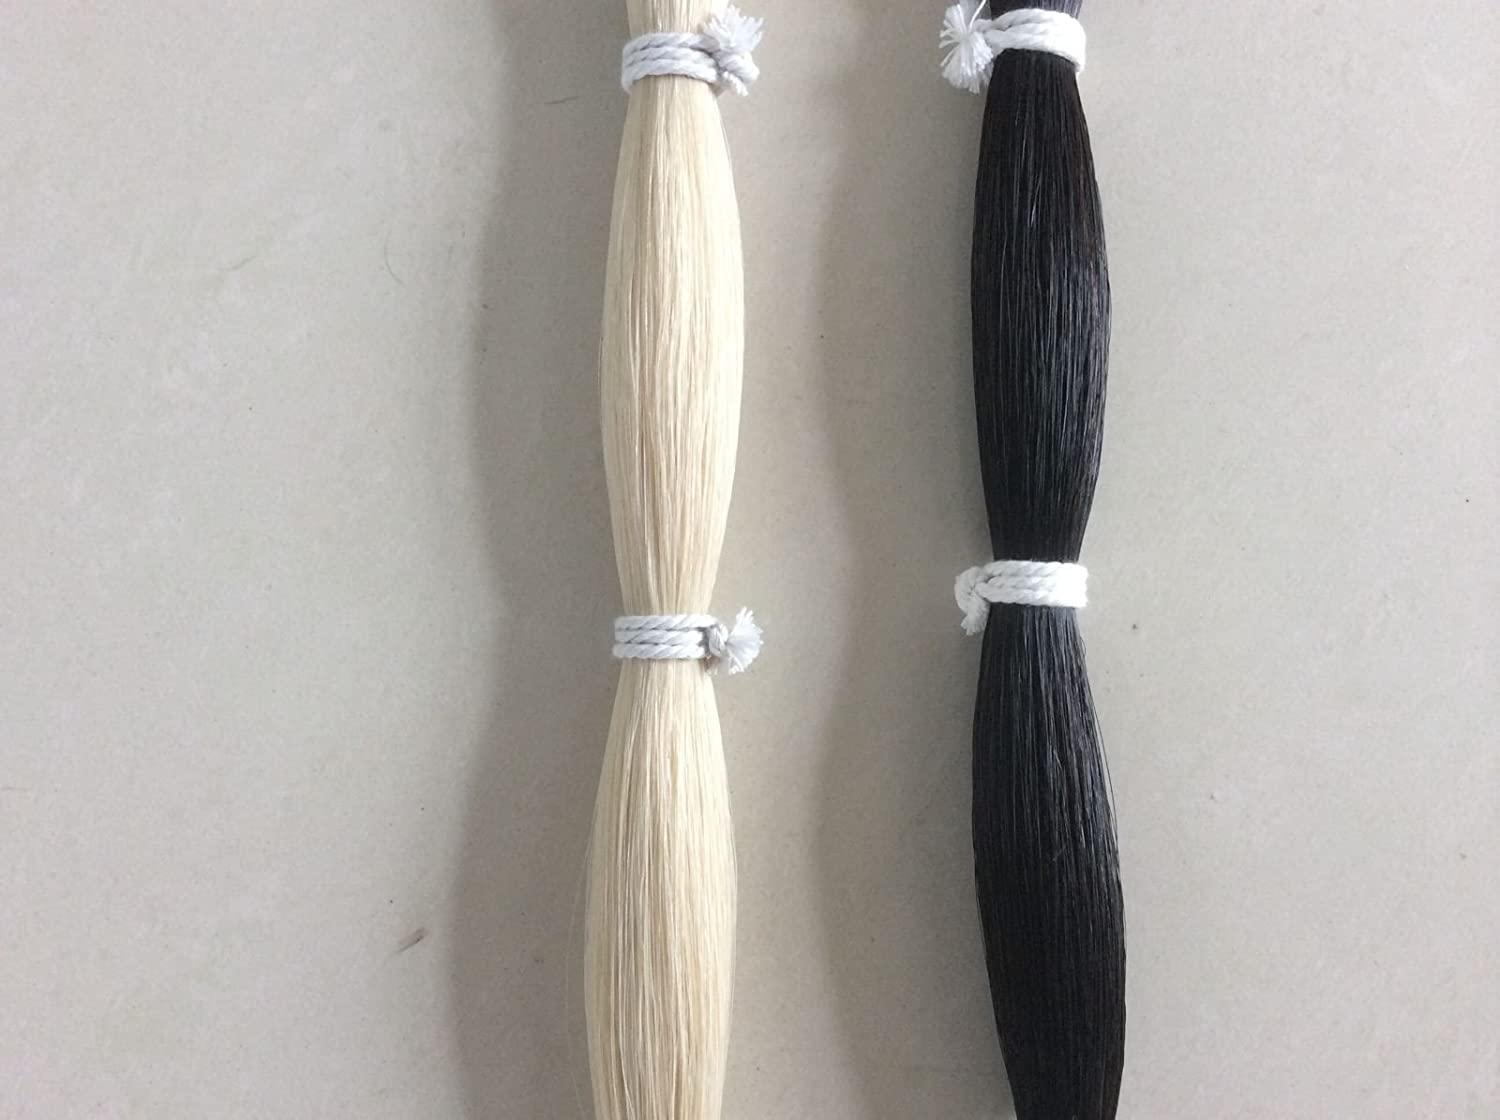 Black and White Horse Tail Hair Extension 70-76cm 170grams